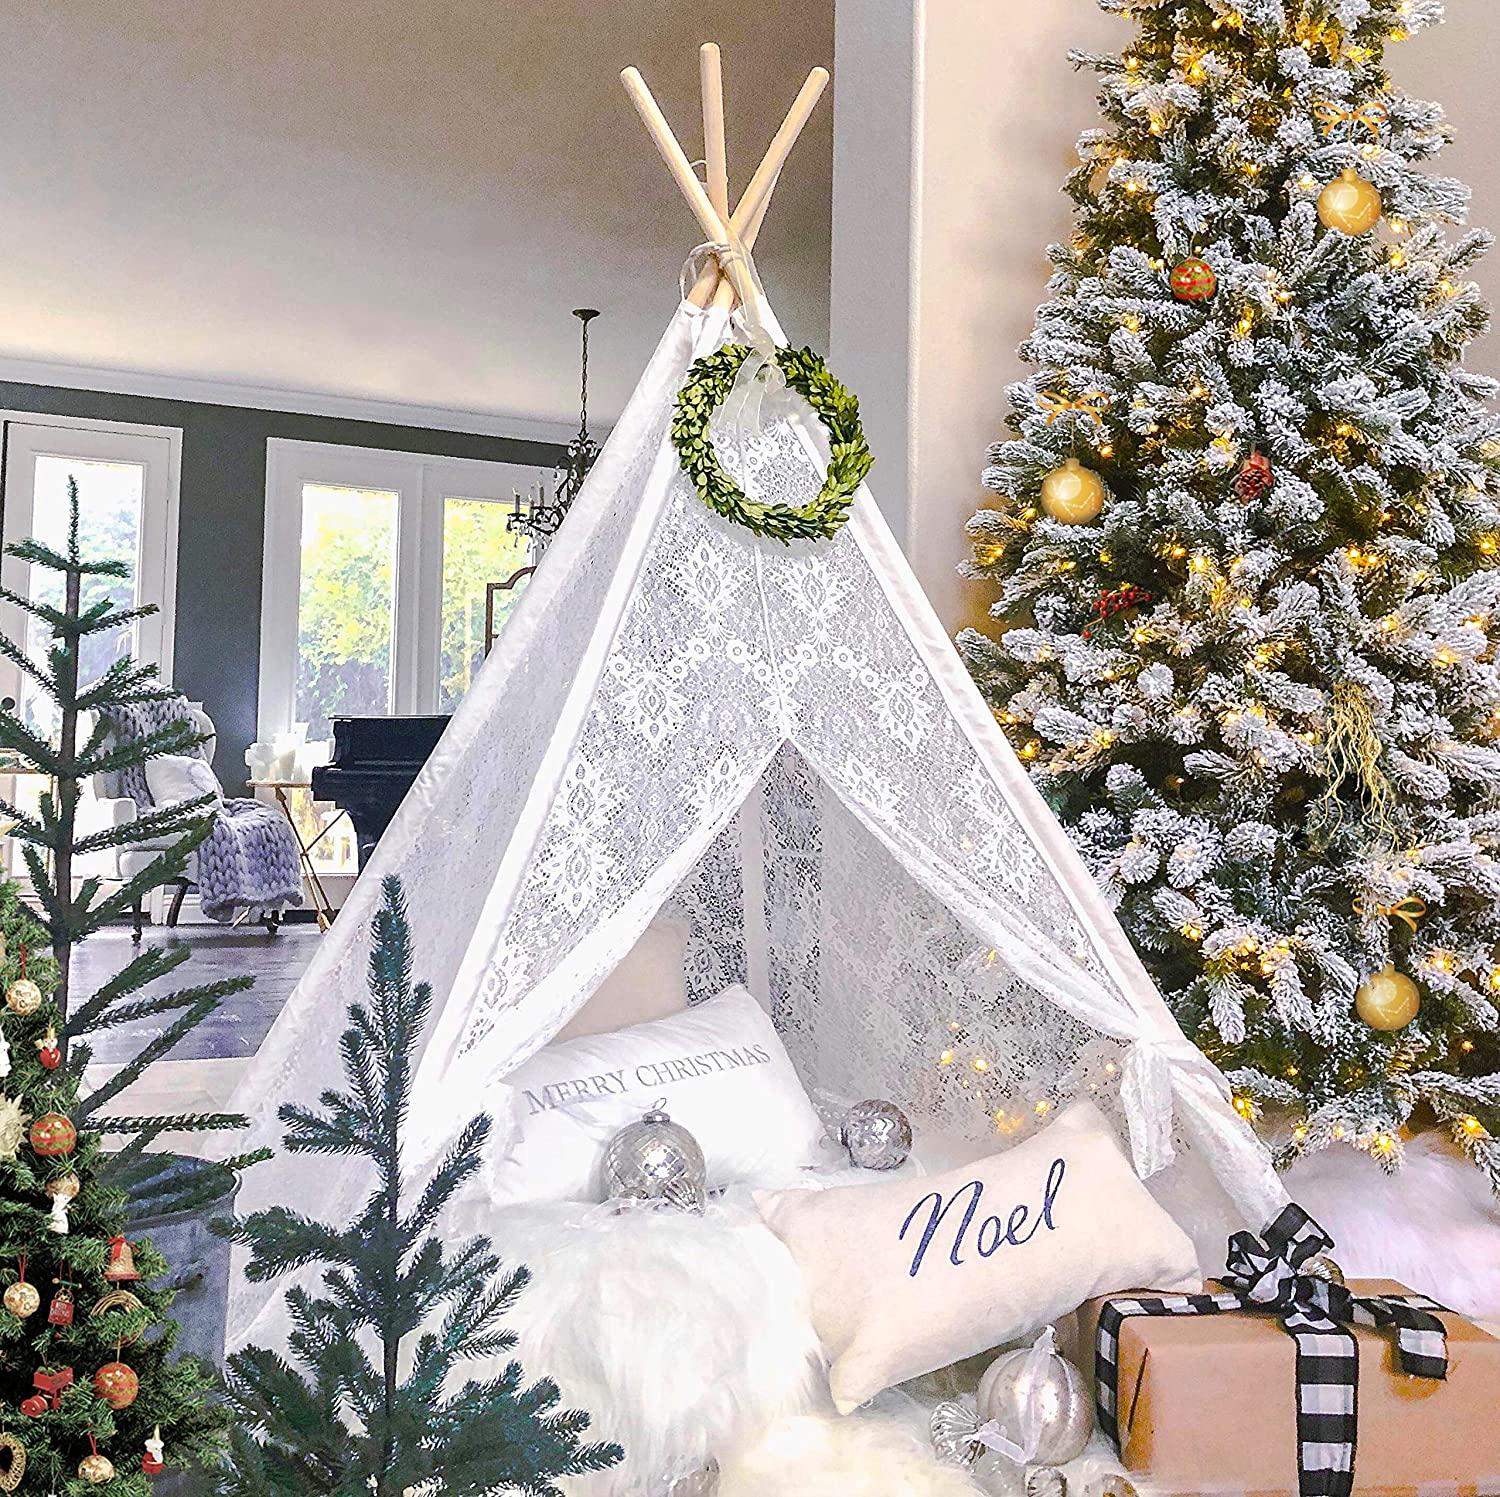 Kids Teepee Tent for Girls, Sheer Lace Indoor and Outdoor Canopy and Creative Play Space